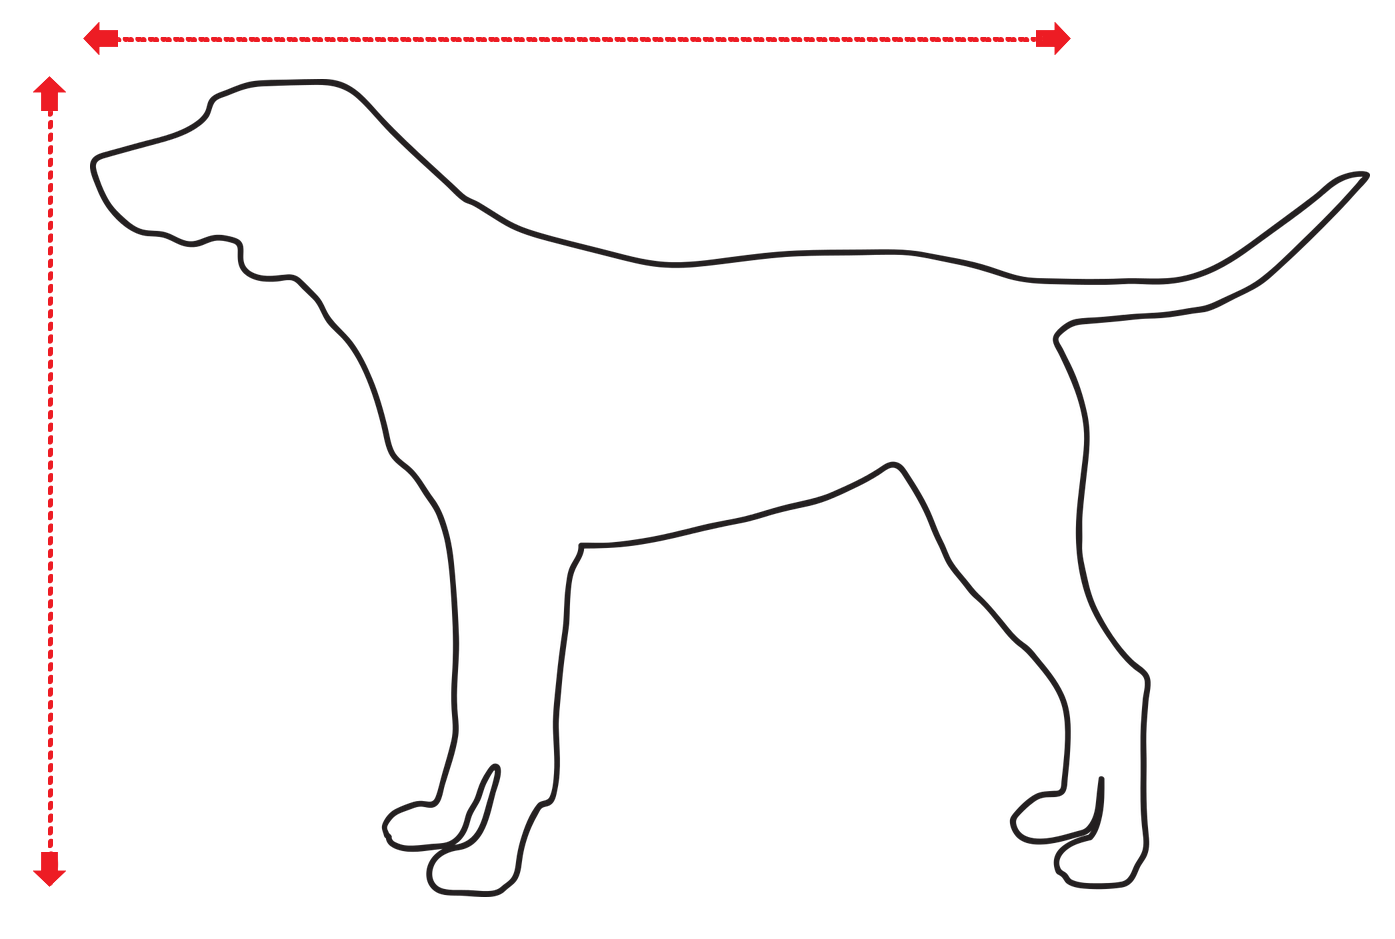 How to measure a dog correctly